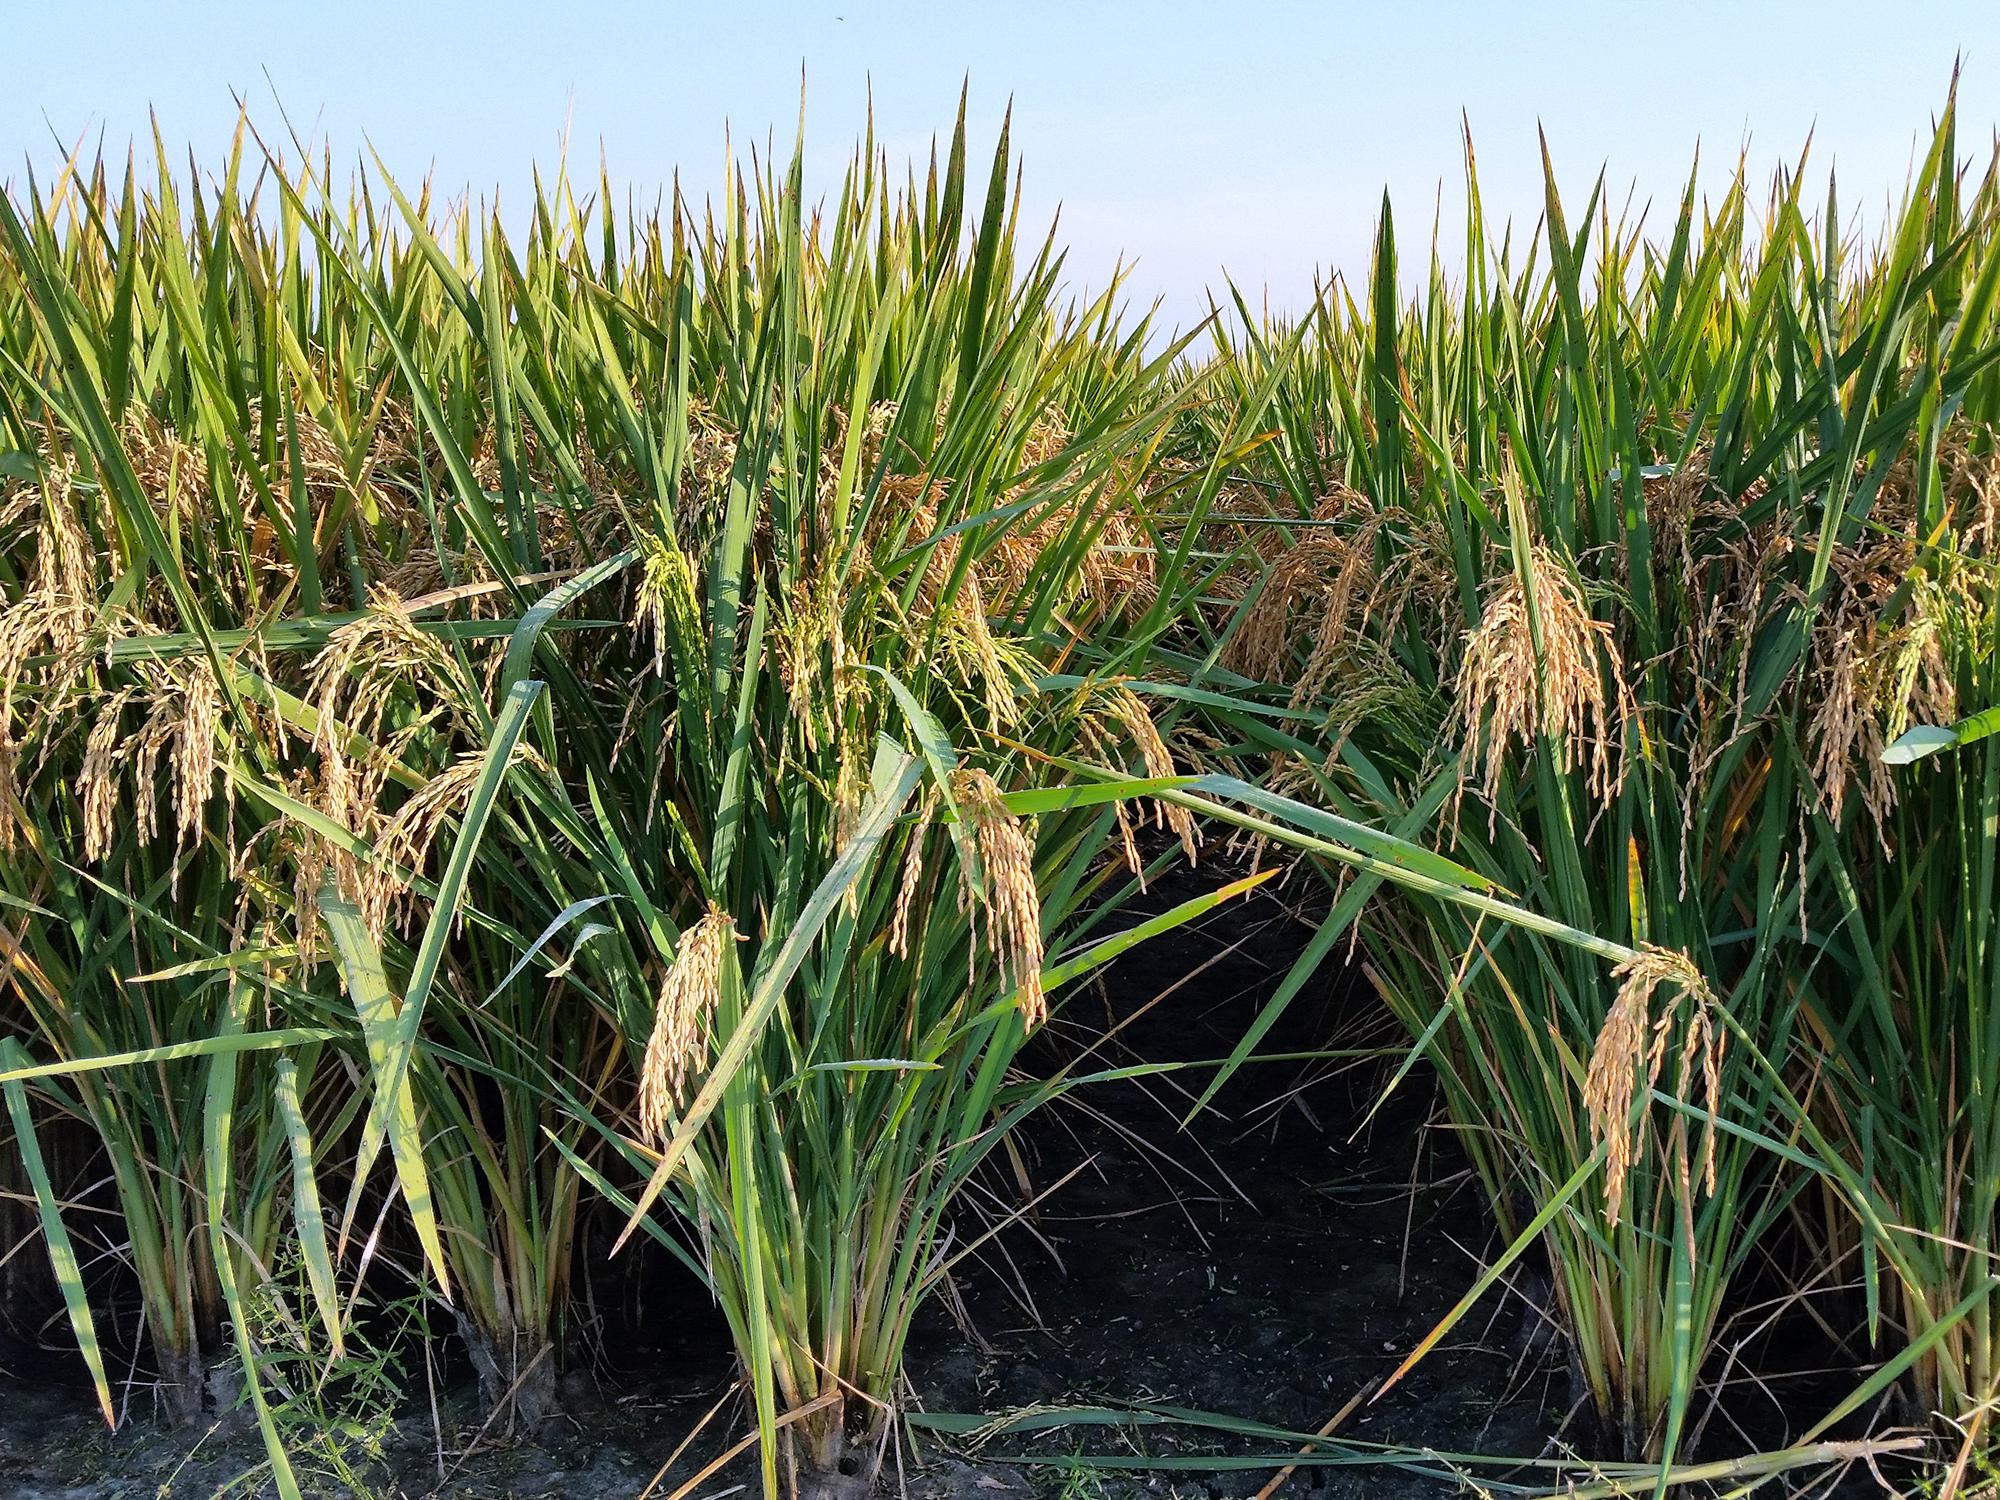 A Thad rice paddy is pictured at the Delta Research and Extension Center in Stoneville, Mississippi, on September 17, 2014. (Photo by MSU Delta Research and Extension Center/Ed Redoña)